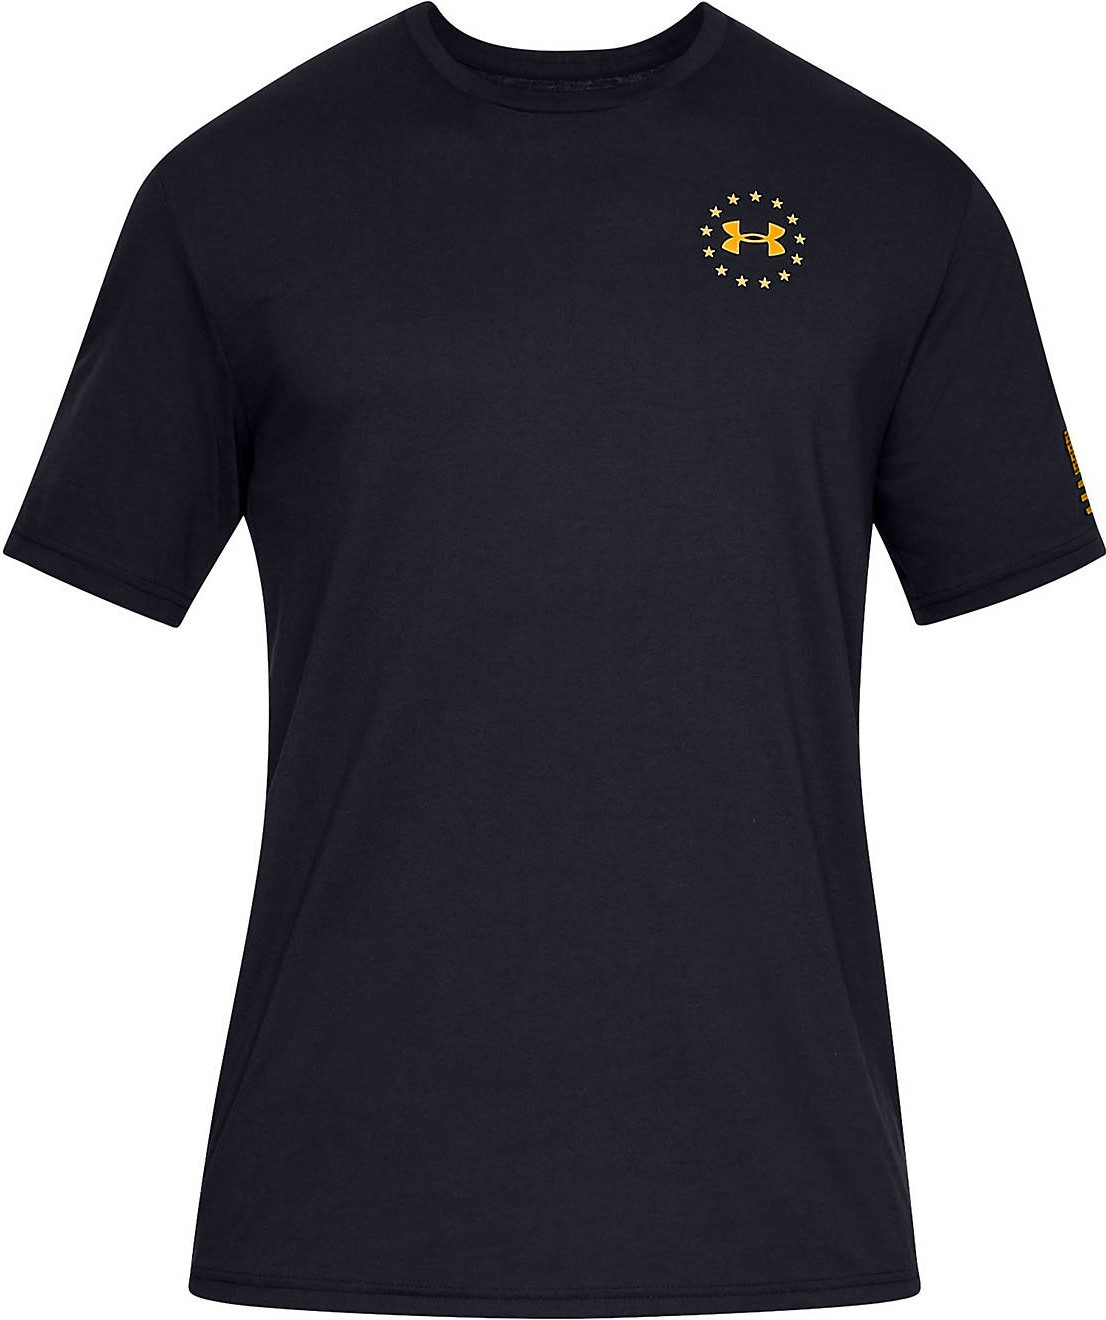 thumbnail 5 - Under Armour Men's UA Freedom Flag Athletic Graphic T-Shirt - 1333350